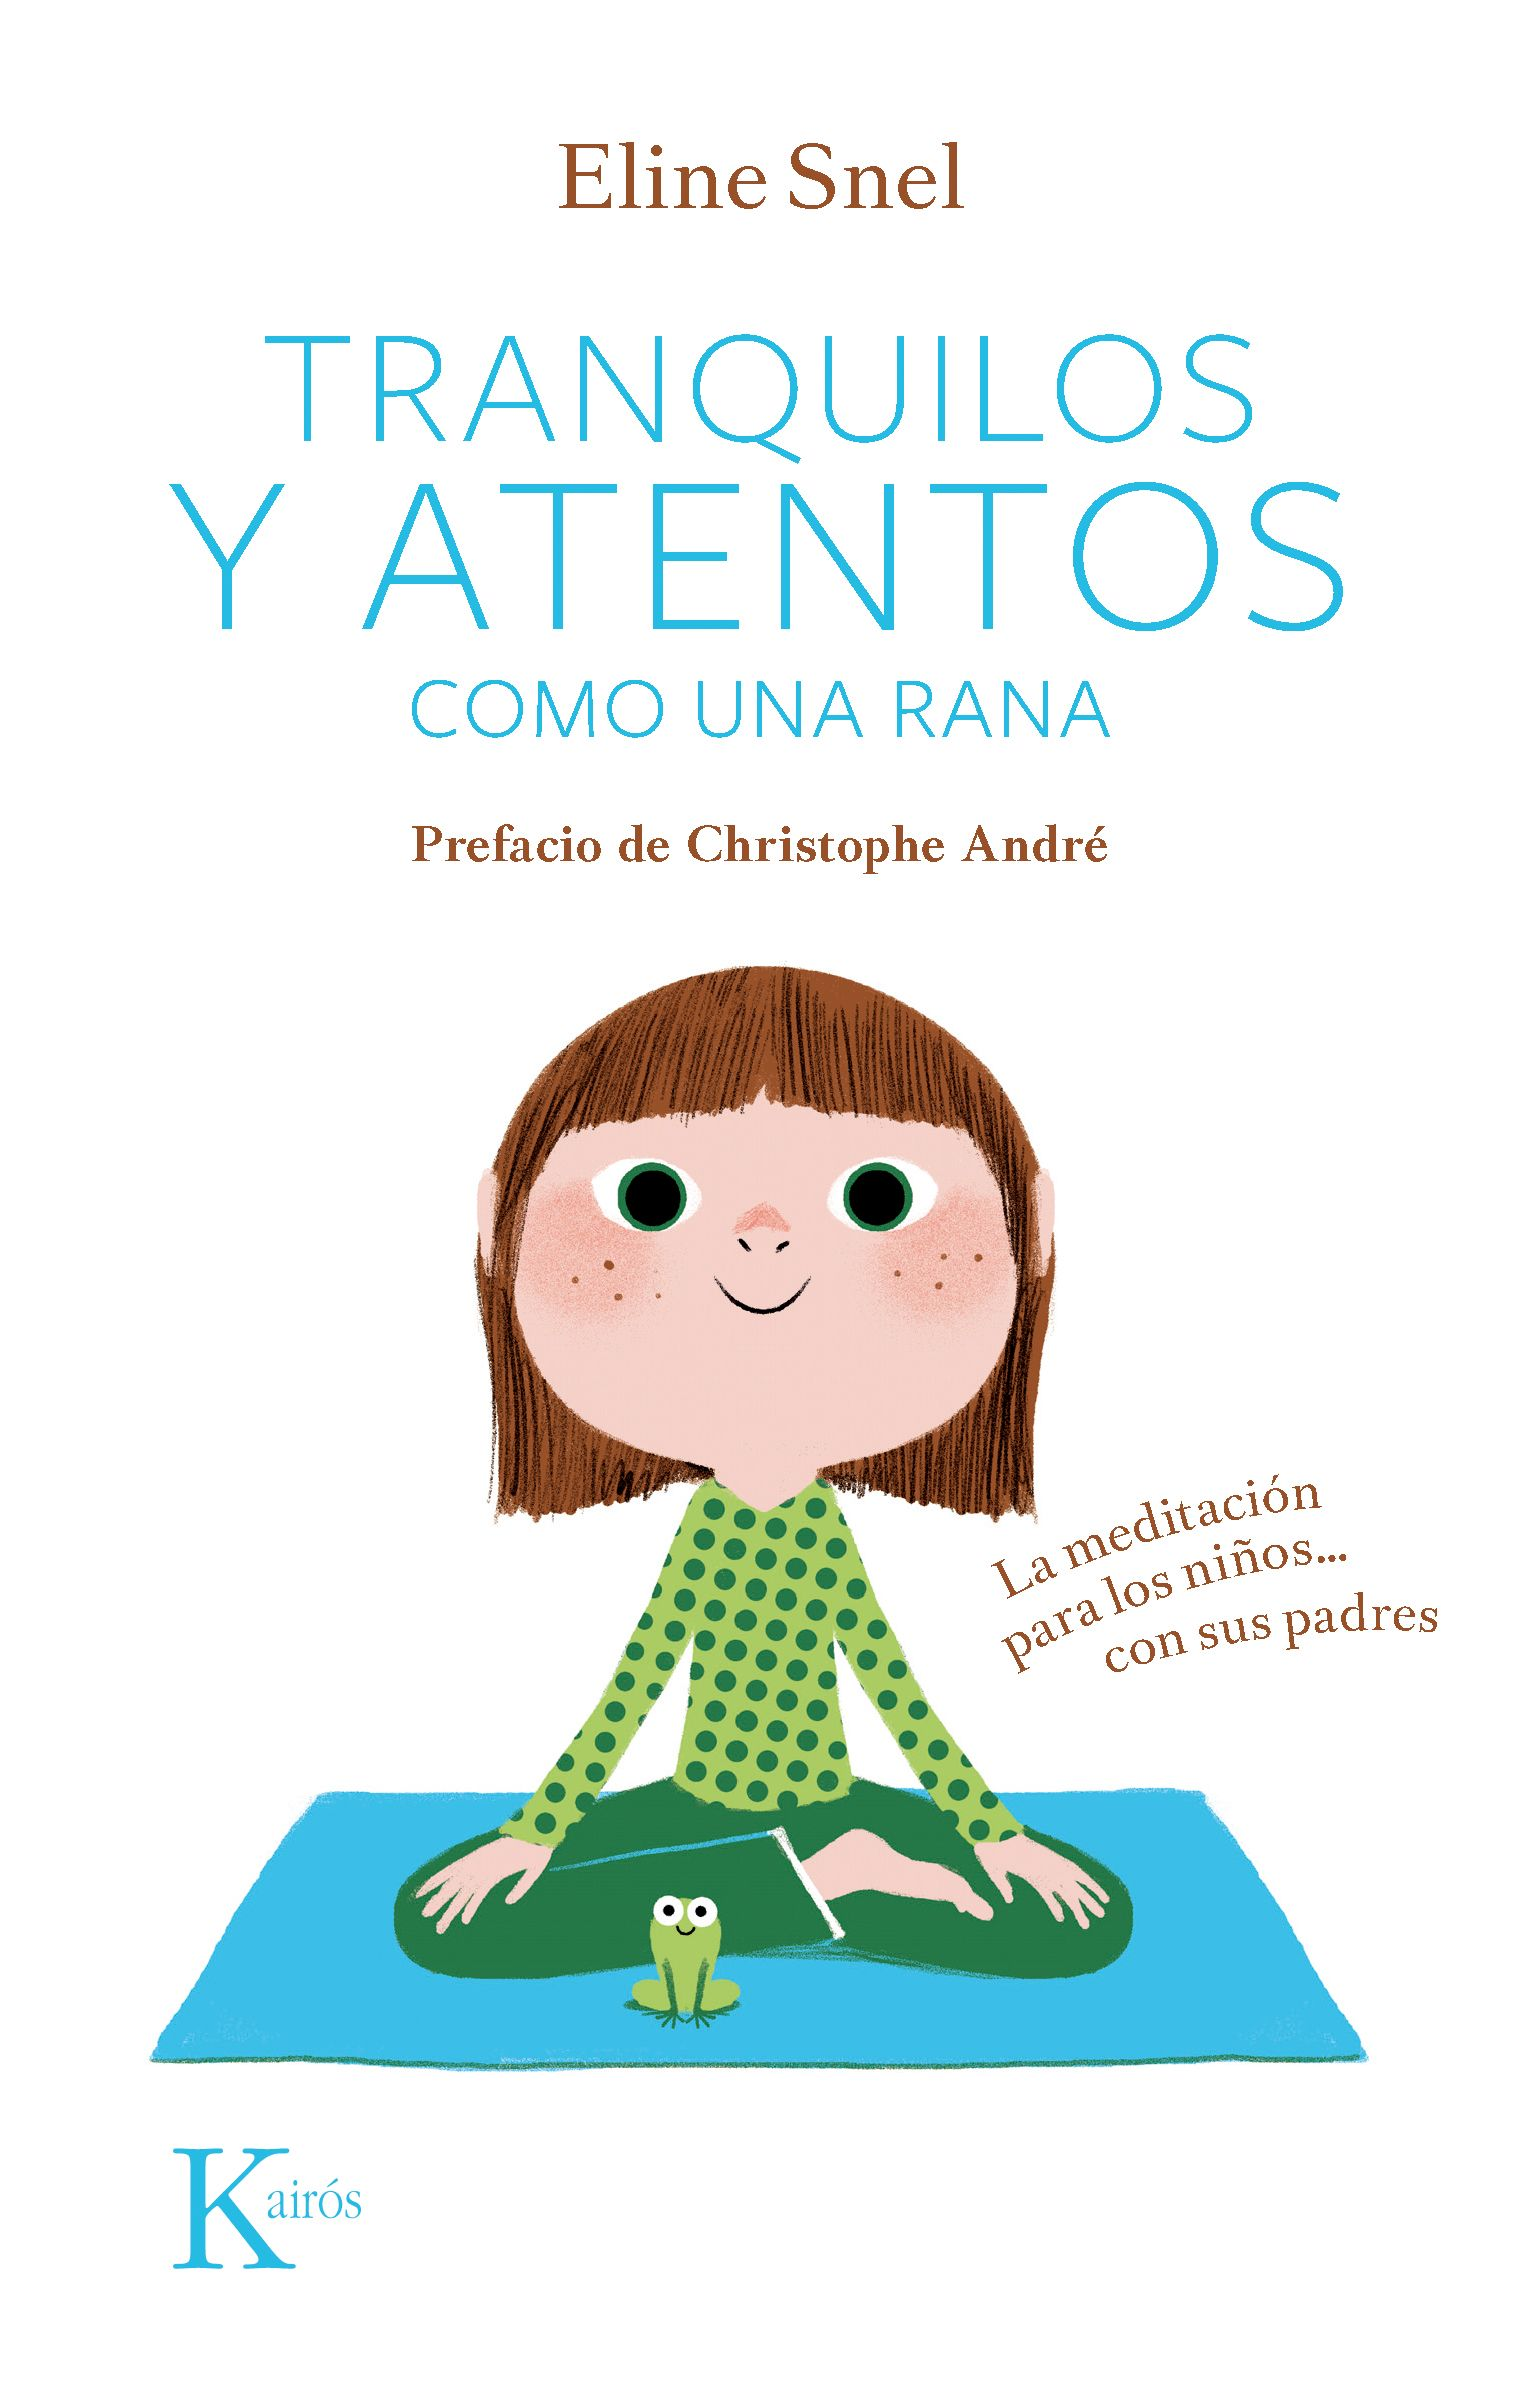 Discussion on this topic: Cinco ejercicios Mindfulness para practicar en el , cinco-ejercicios-mindfulness-para-practicar-en-el/